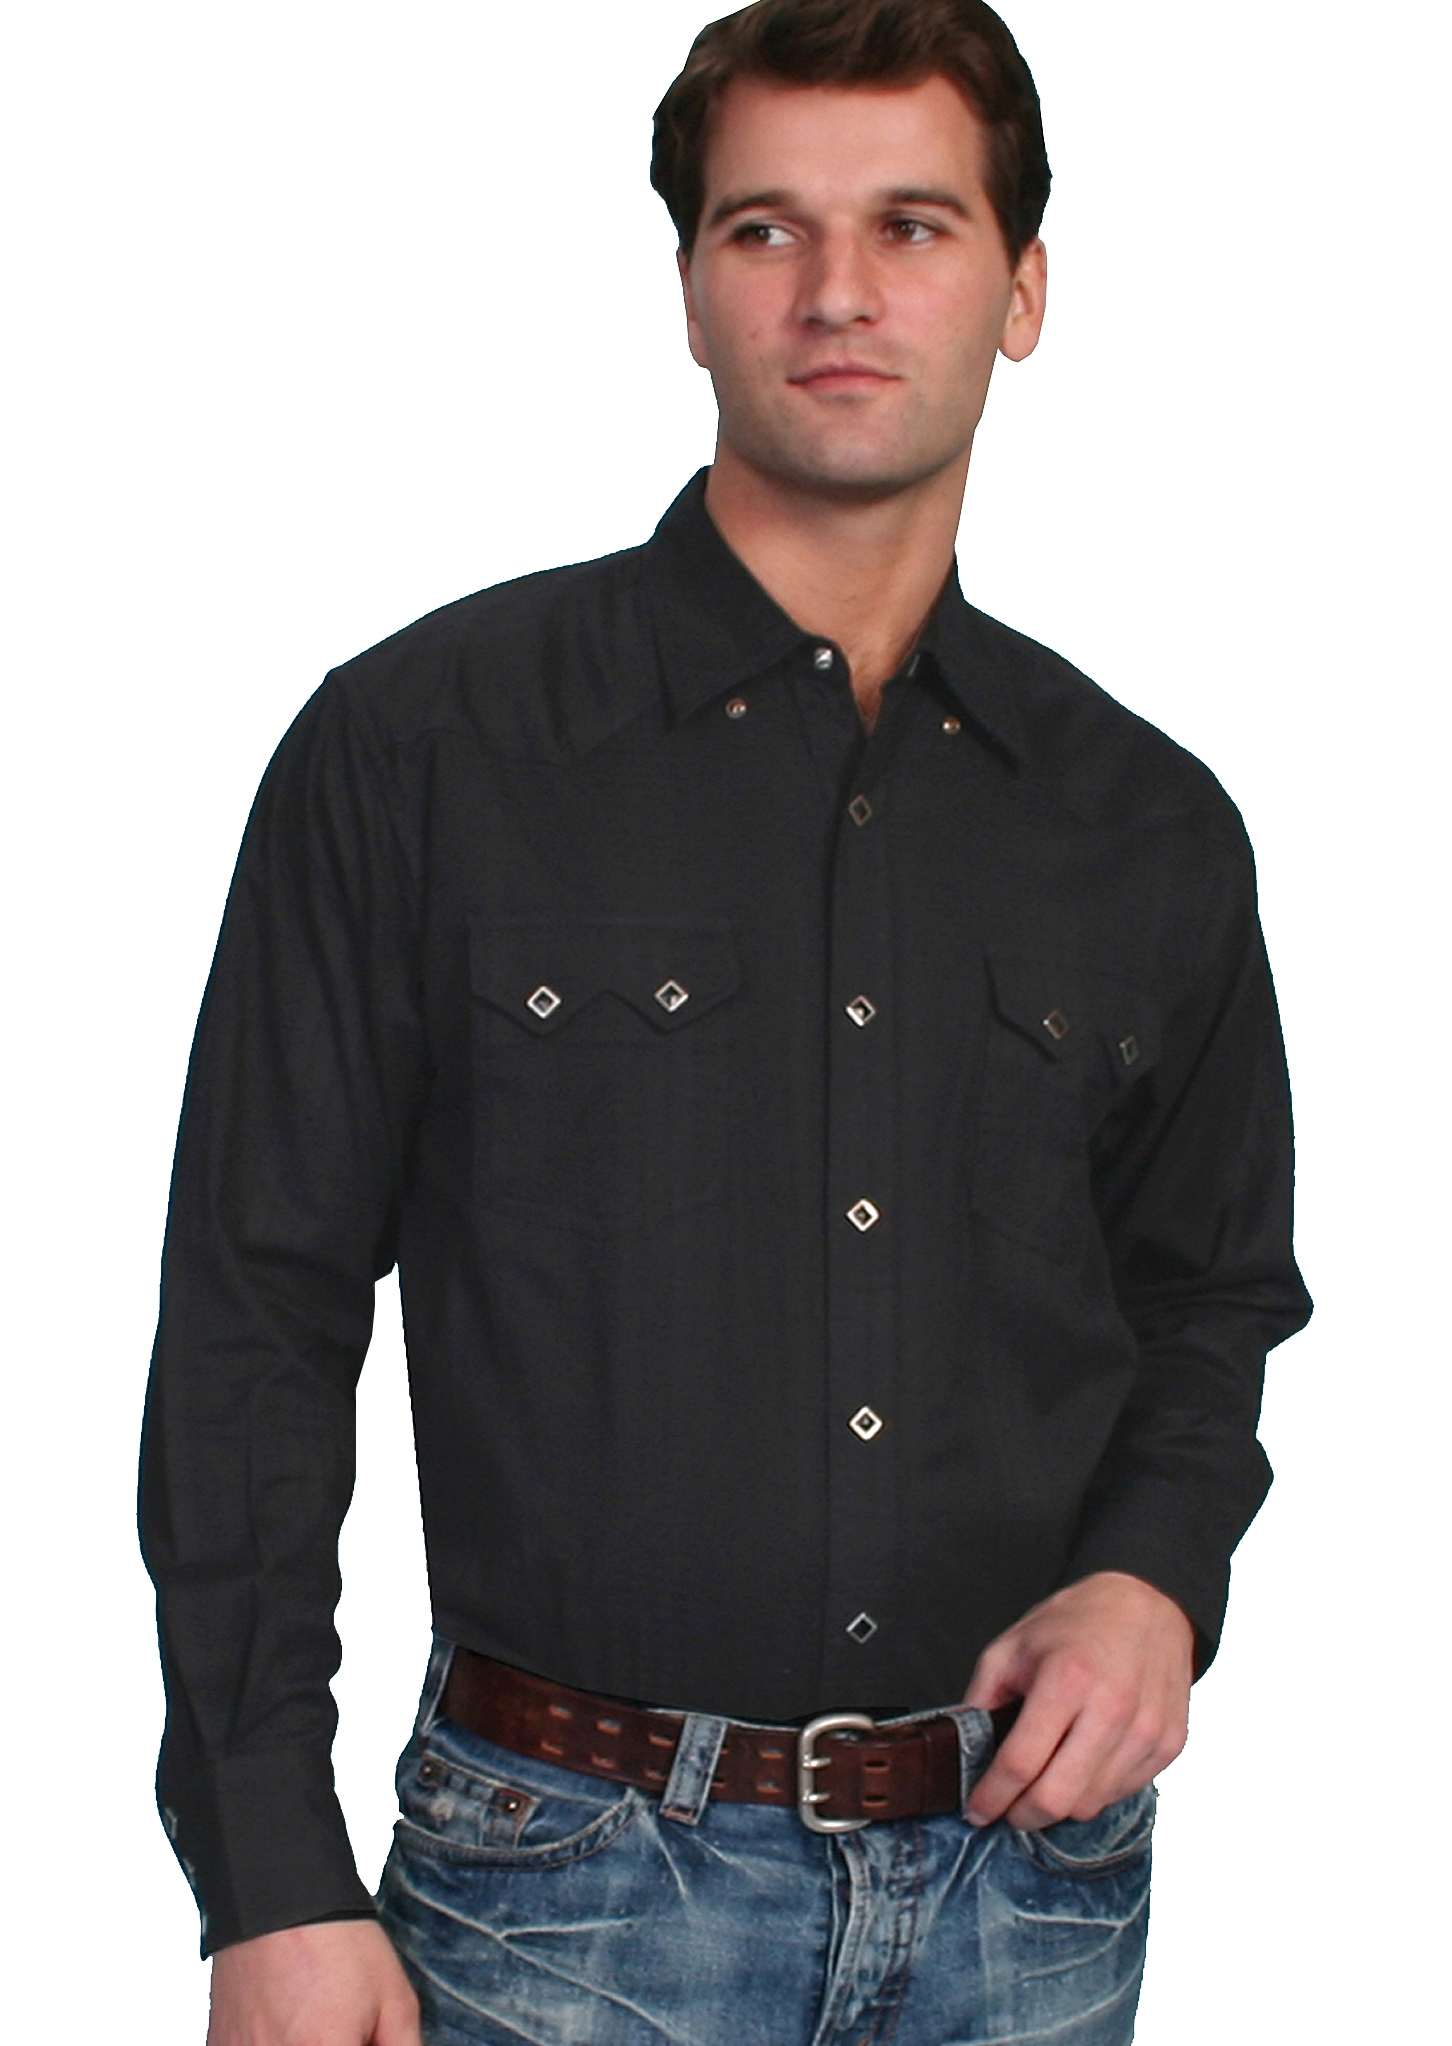 Mens Scully Sawtooth pocket dobby stripe Black western shirt, scully western shirt, denim scully shirt, western shirt, mens western shirt, scully shirt